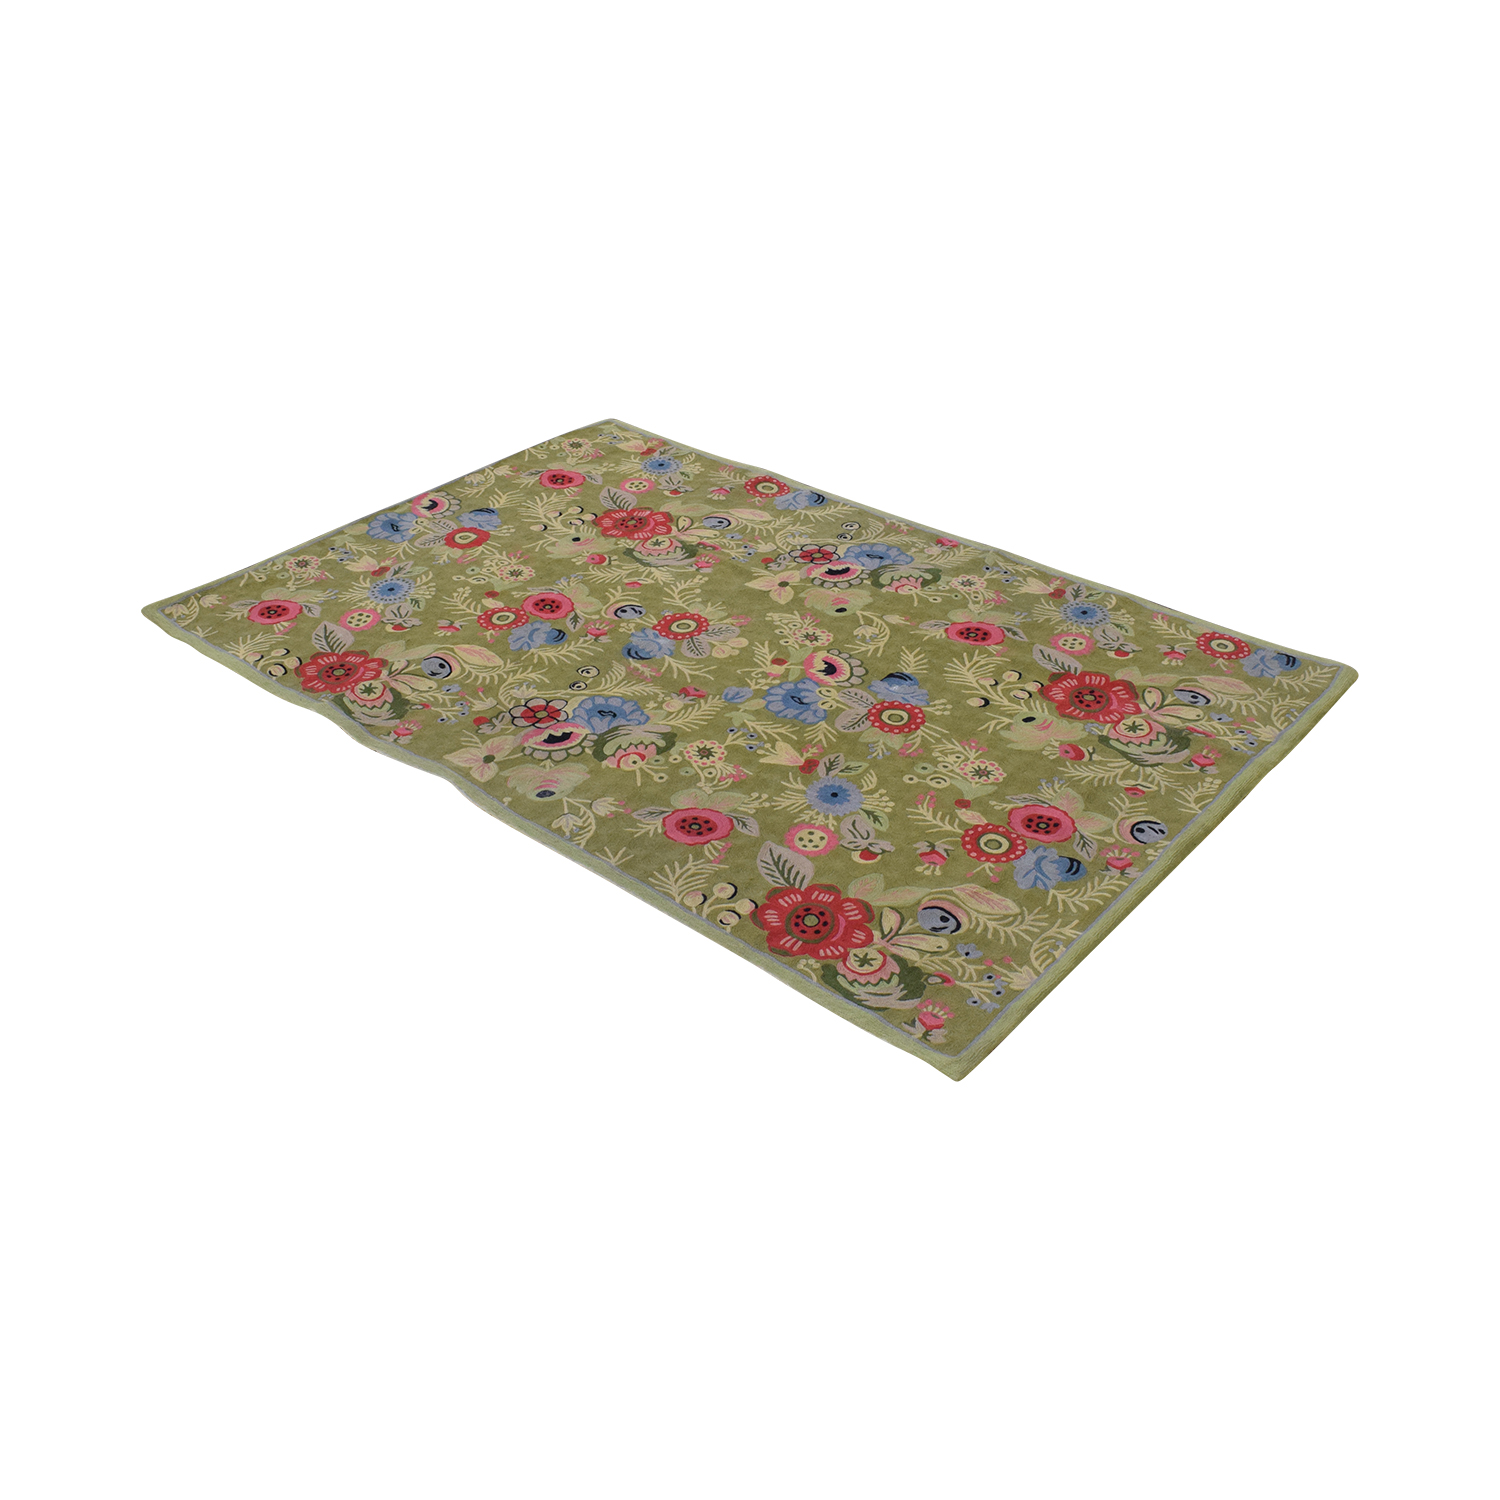 Anthropologie Anthropologie Woven Wool Floral Rug price